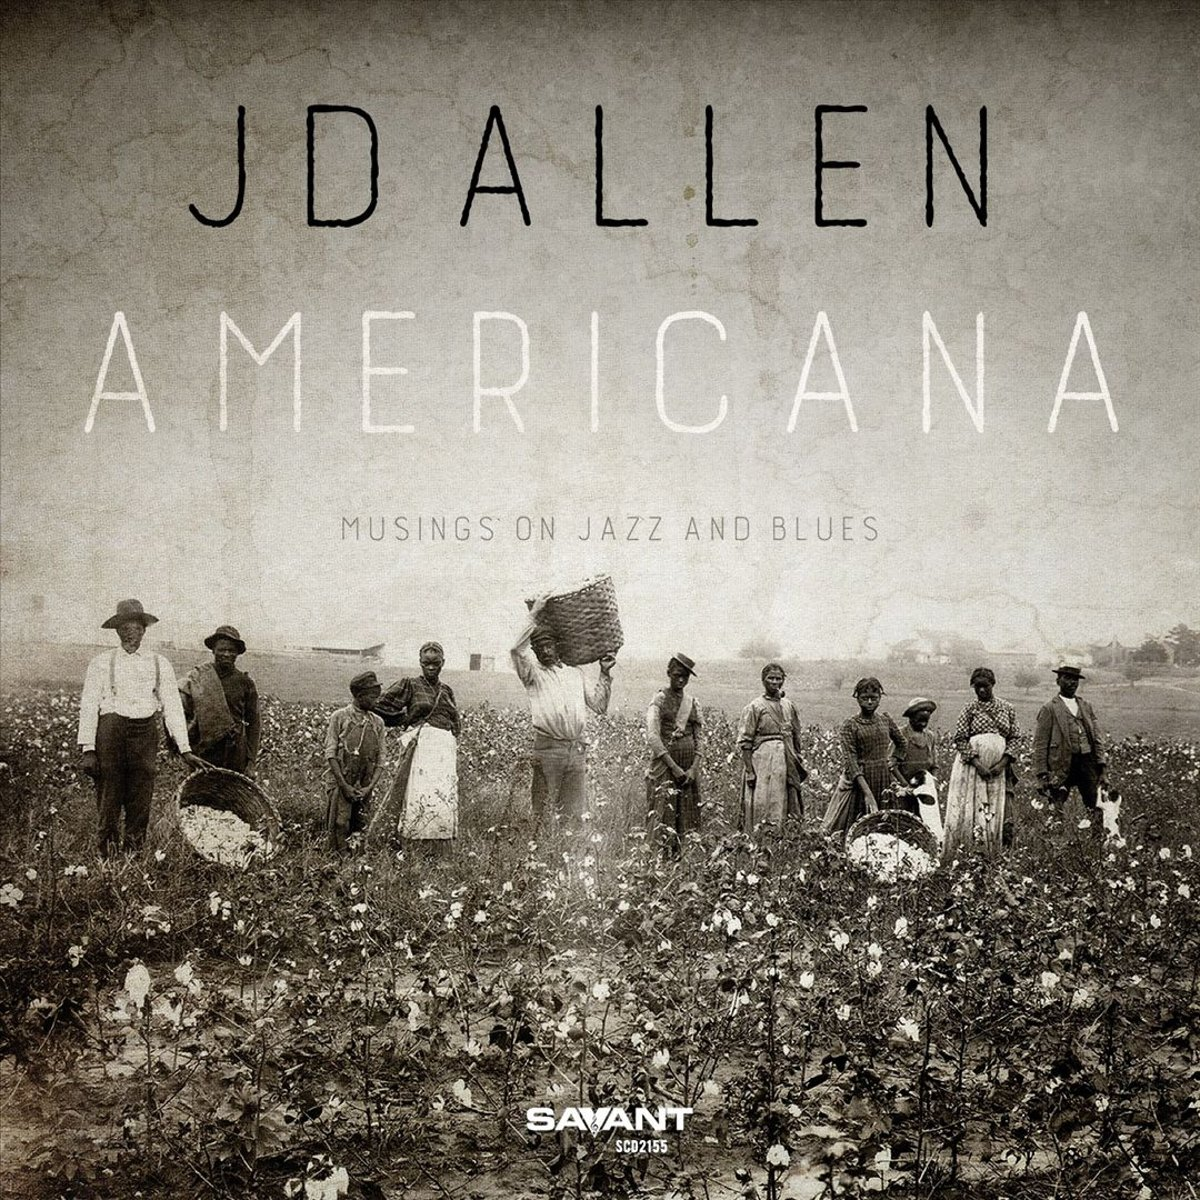 Jd Allen Jd Allen. Americana - Musings On Jazz And Blues jd коллекция весна